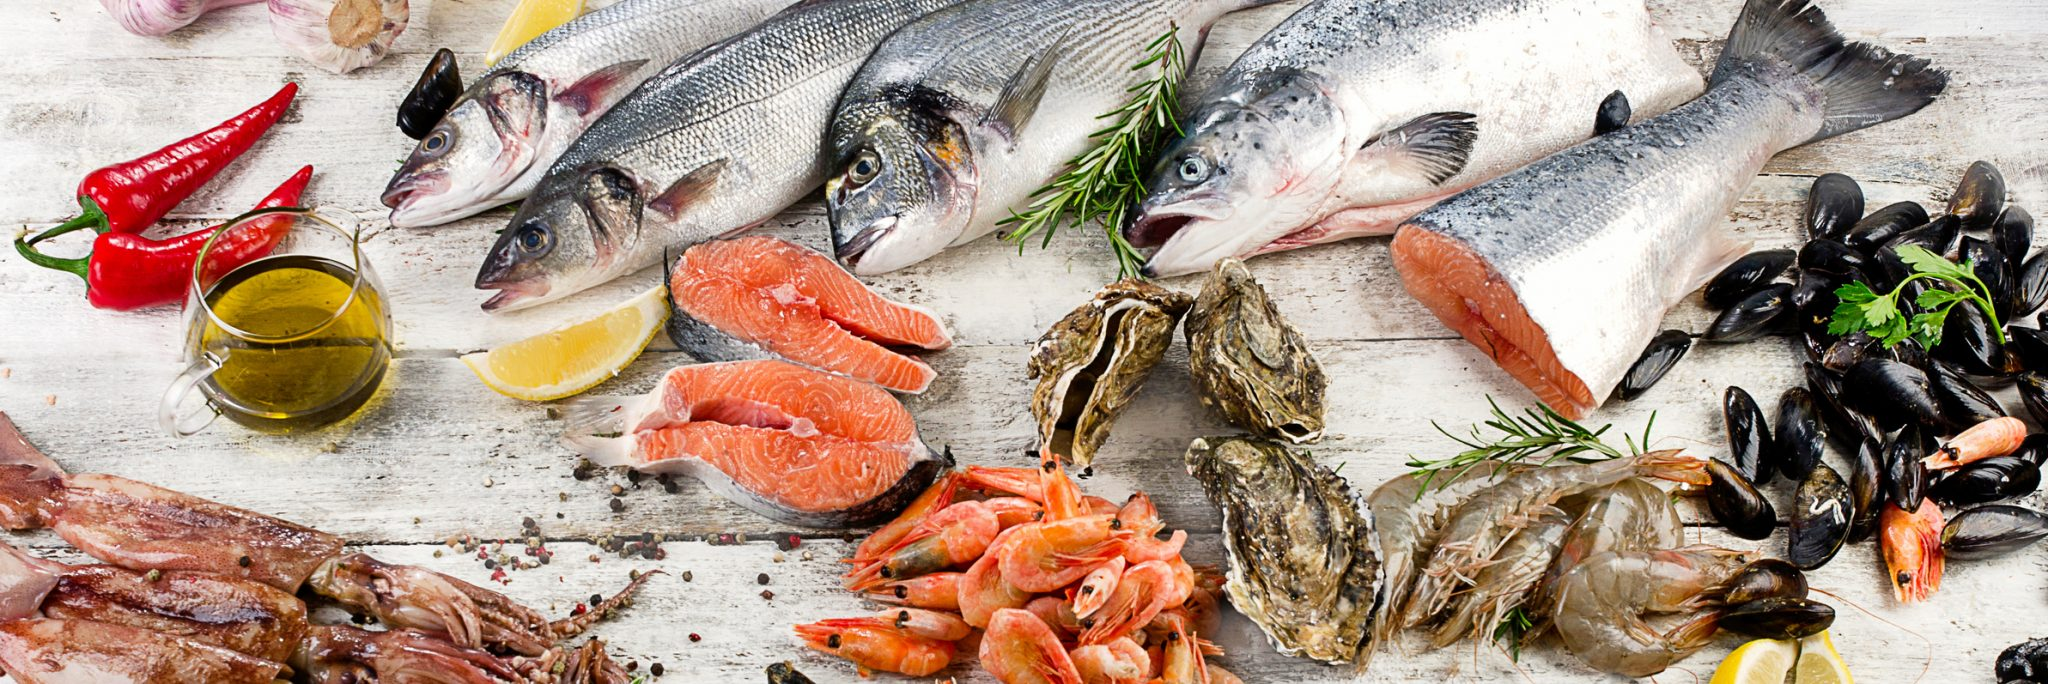 Fresh fish and other seafood on wooden background. Top view